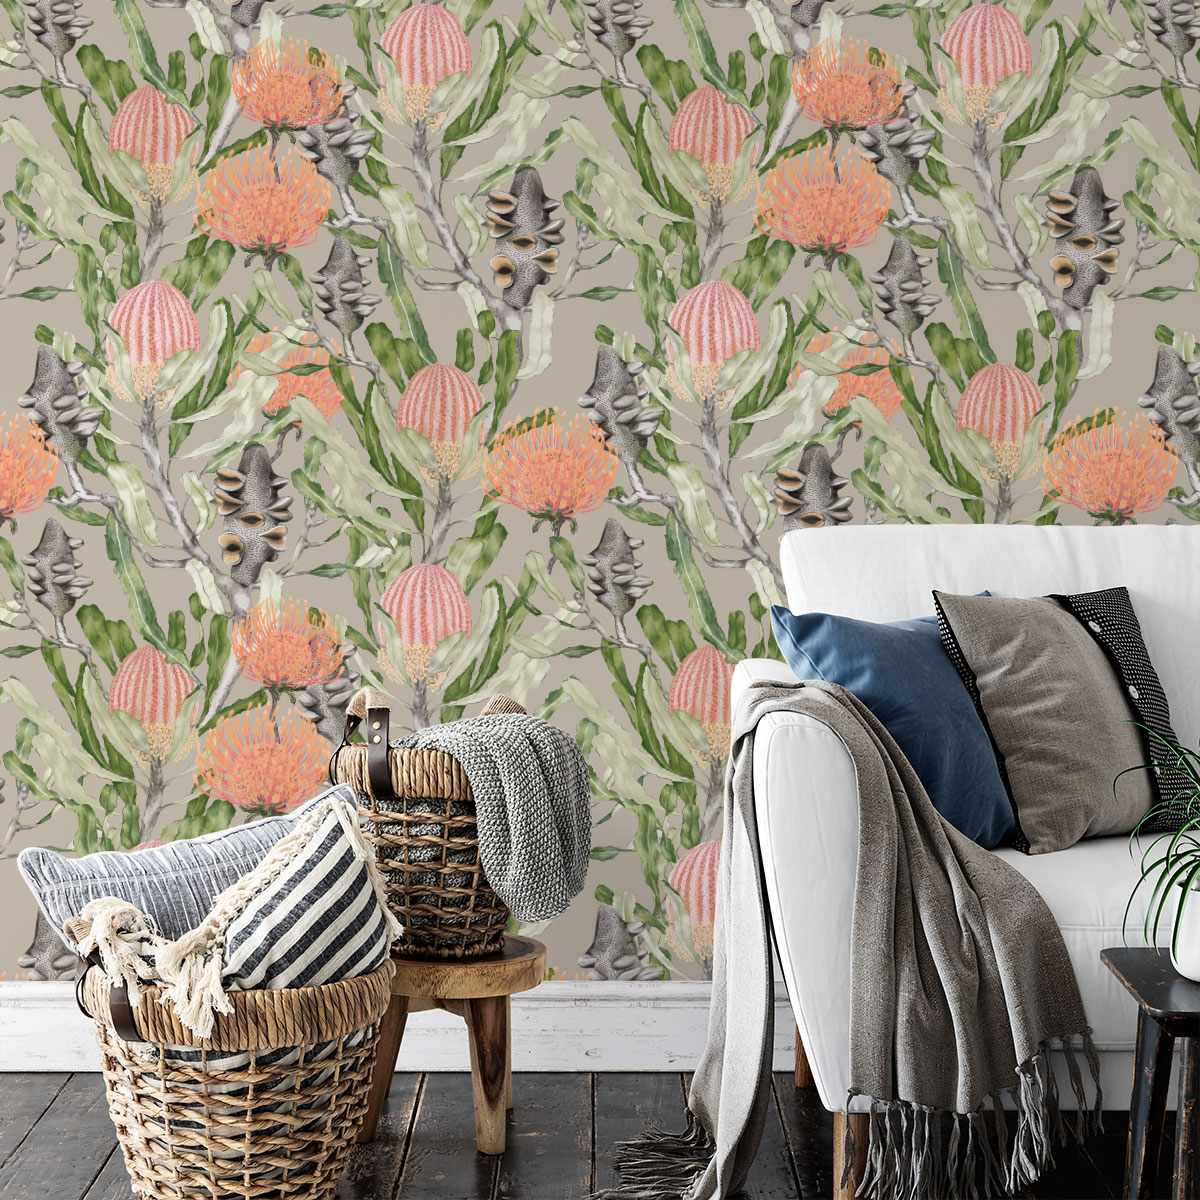 Banksia_wallpaper_mockup2